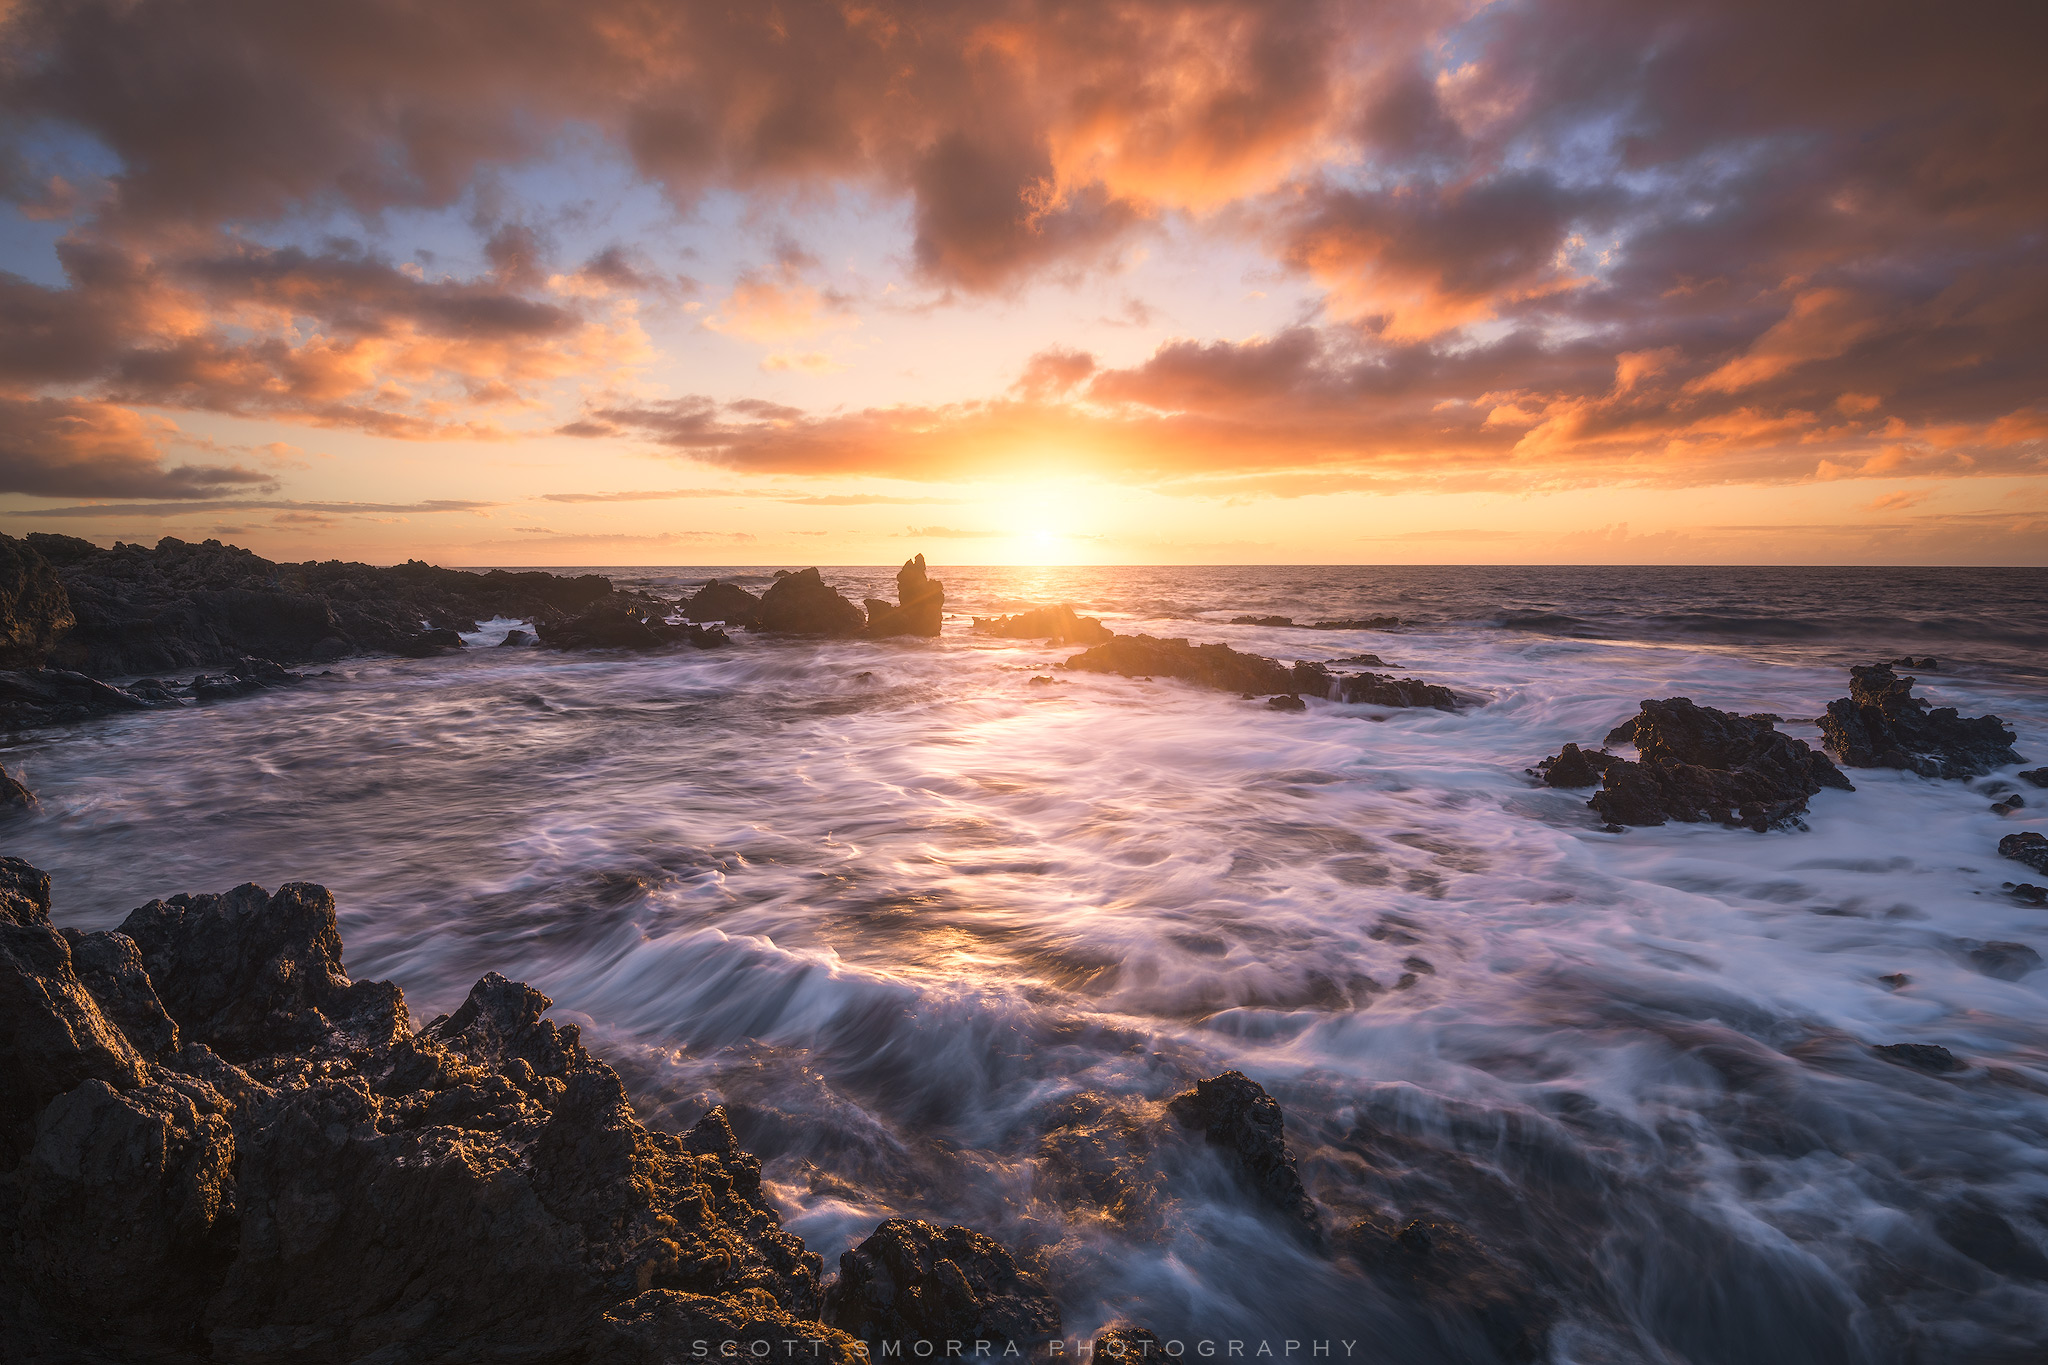 Hawaii, Big Island, Waikoloa, sunset, light, Kona, winds, trade-winds, waves, photo